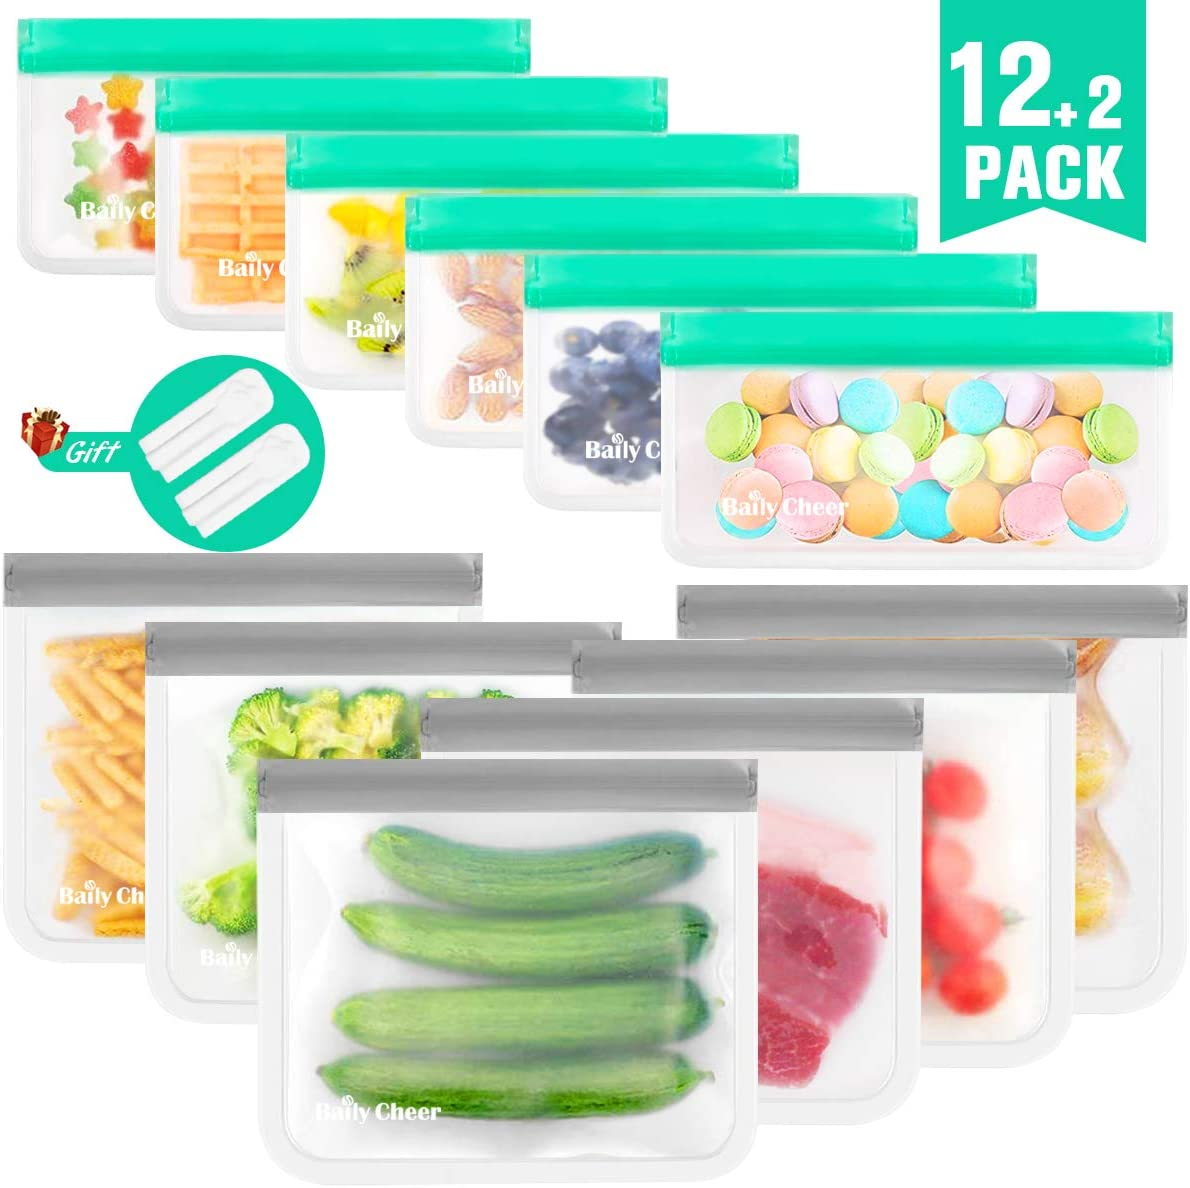 Reusable Storage Bags, 12 Pack Extra Thick Food Storage Bags (6 Reusable Sandwich Bags & 6 Reusable Snack Bags) BPA-Free DUAL Leakproof Re-Zip Seal Storage Bag for Kids School Lunch,Picnic and Travel